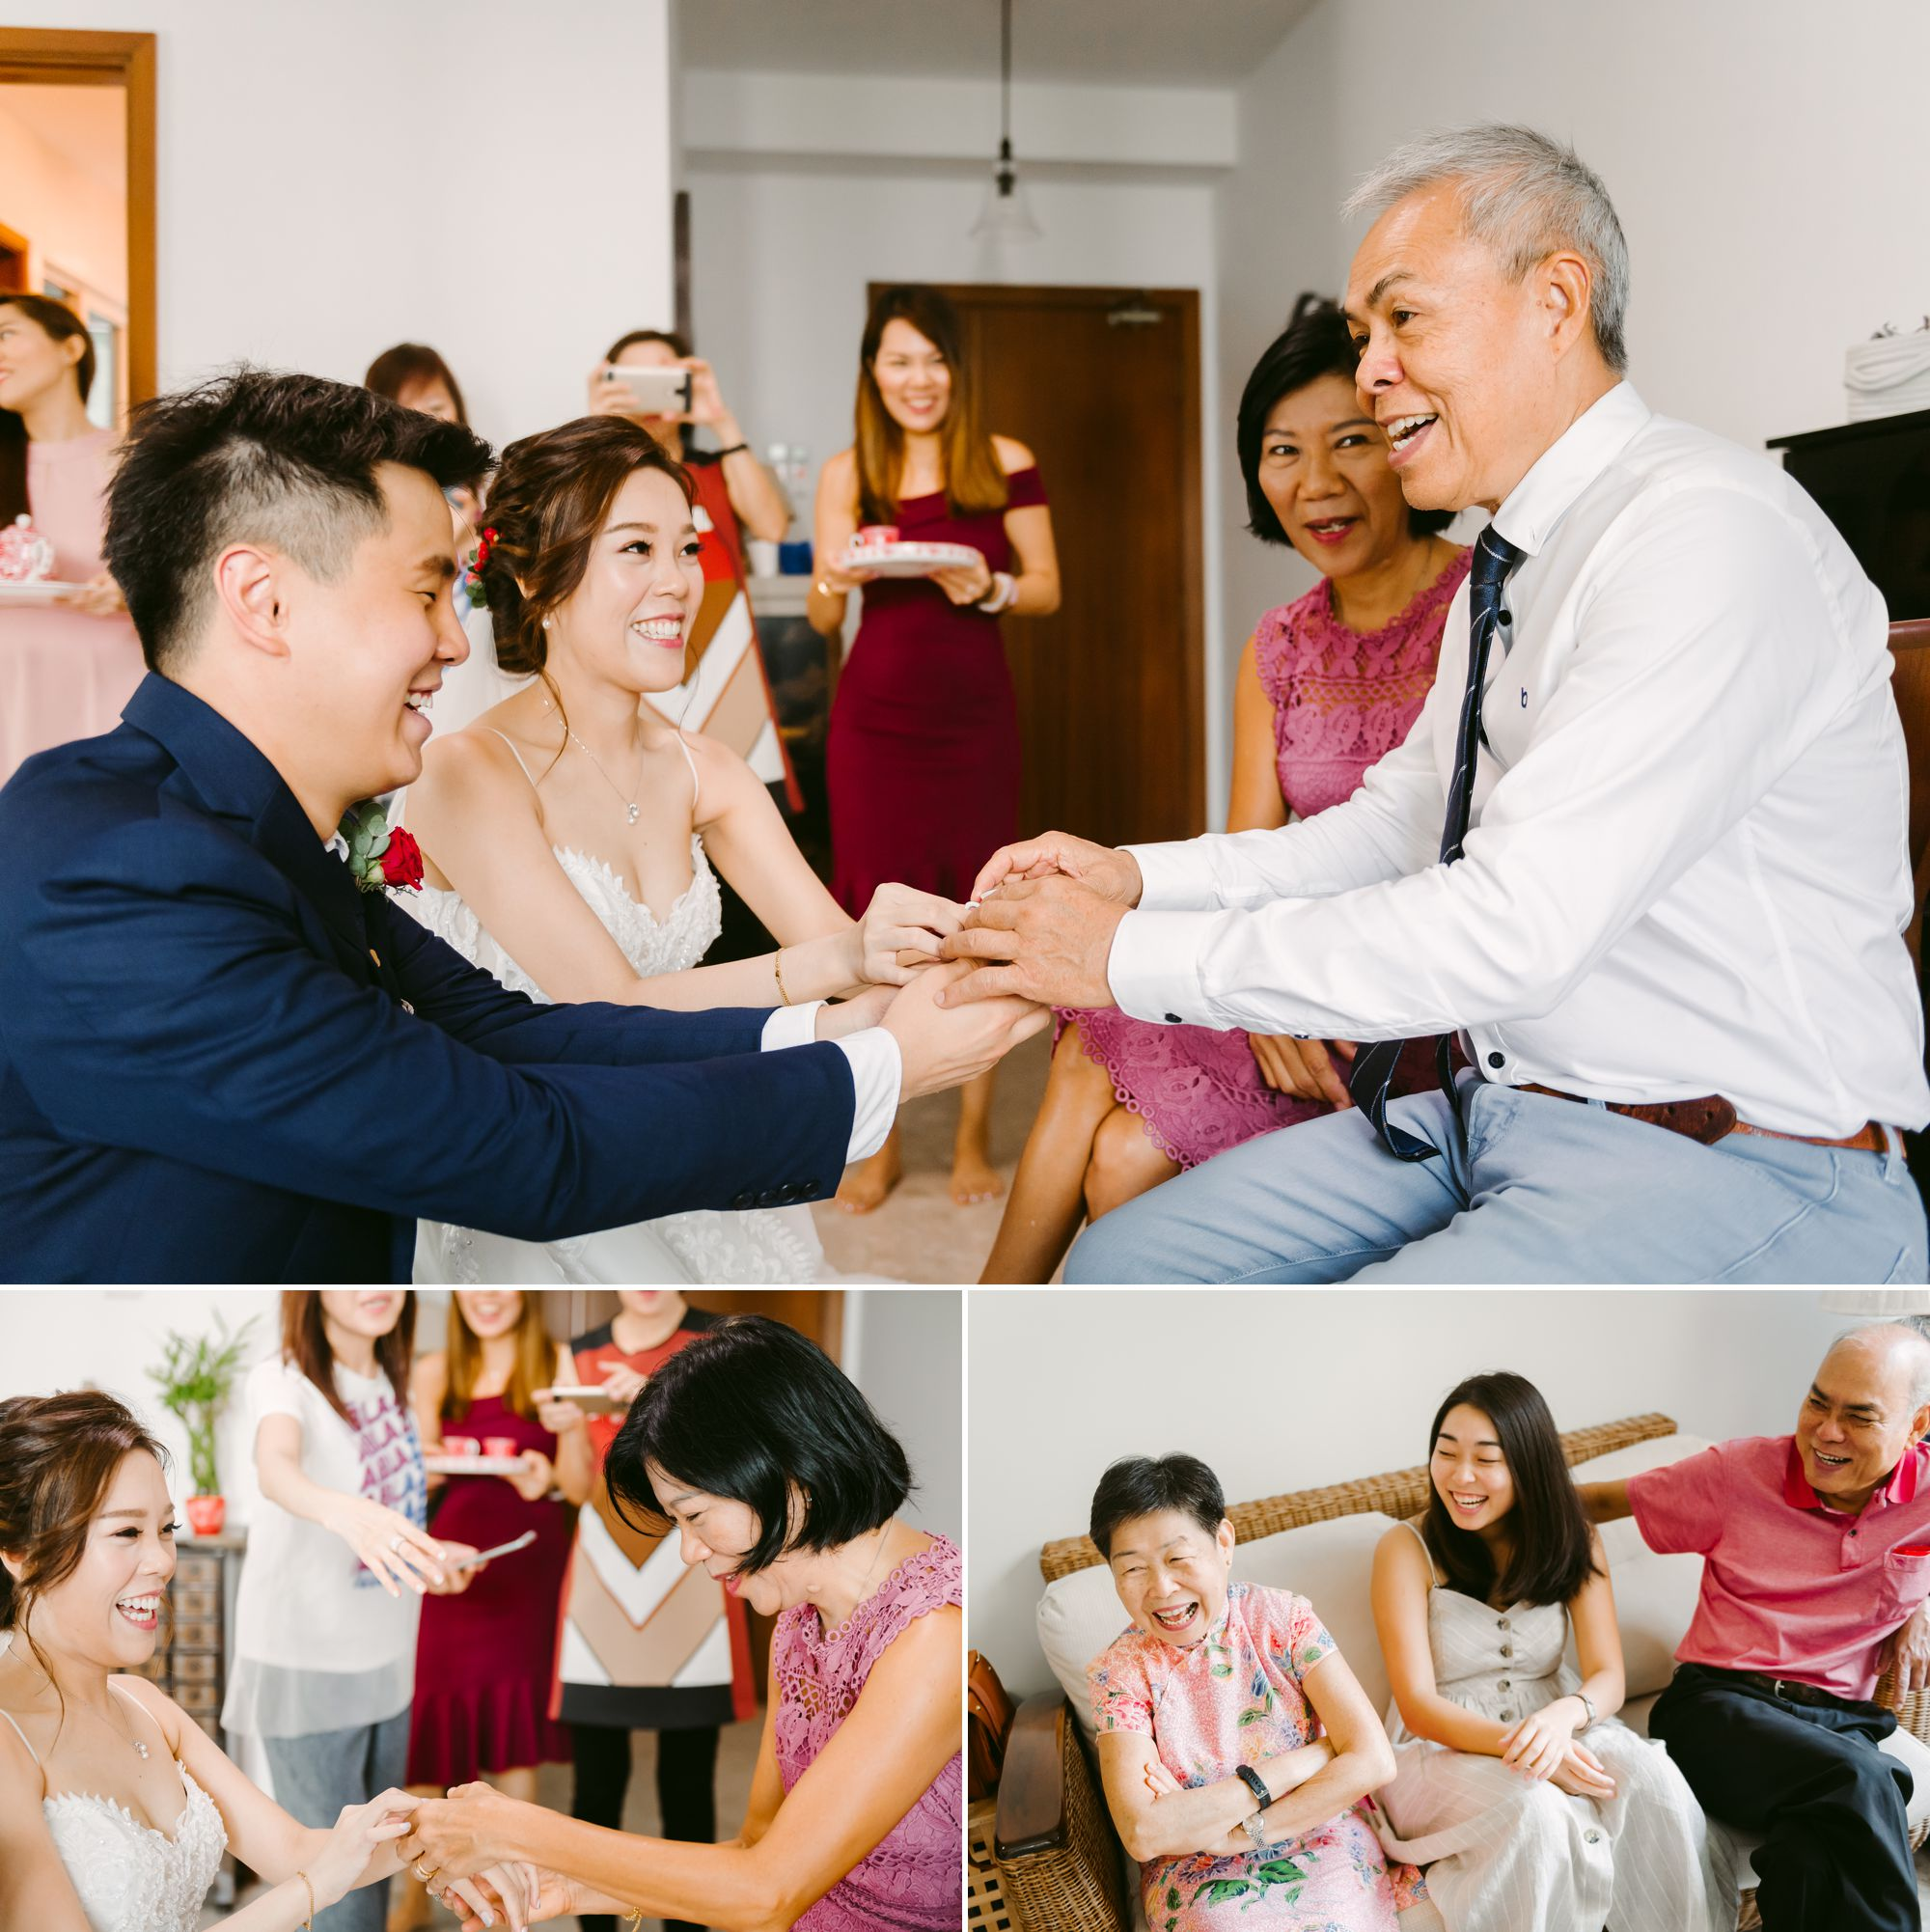 conrad_wedding_Singapore_ 18.jpg